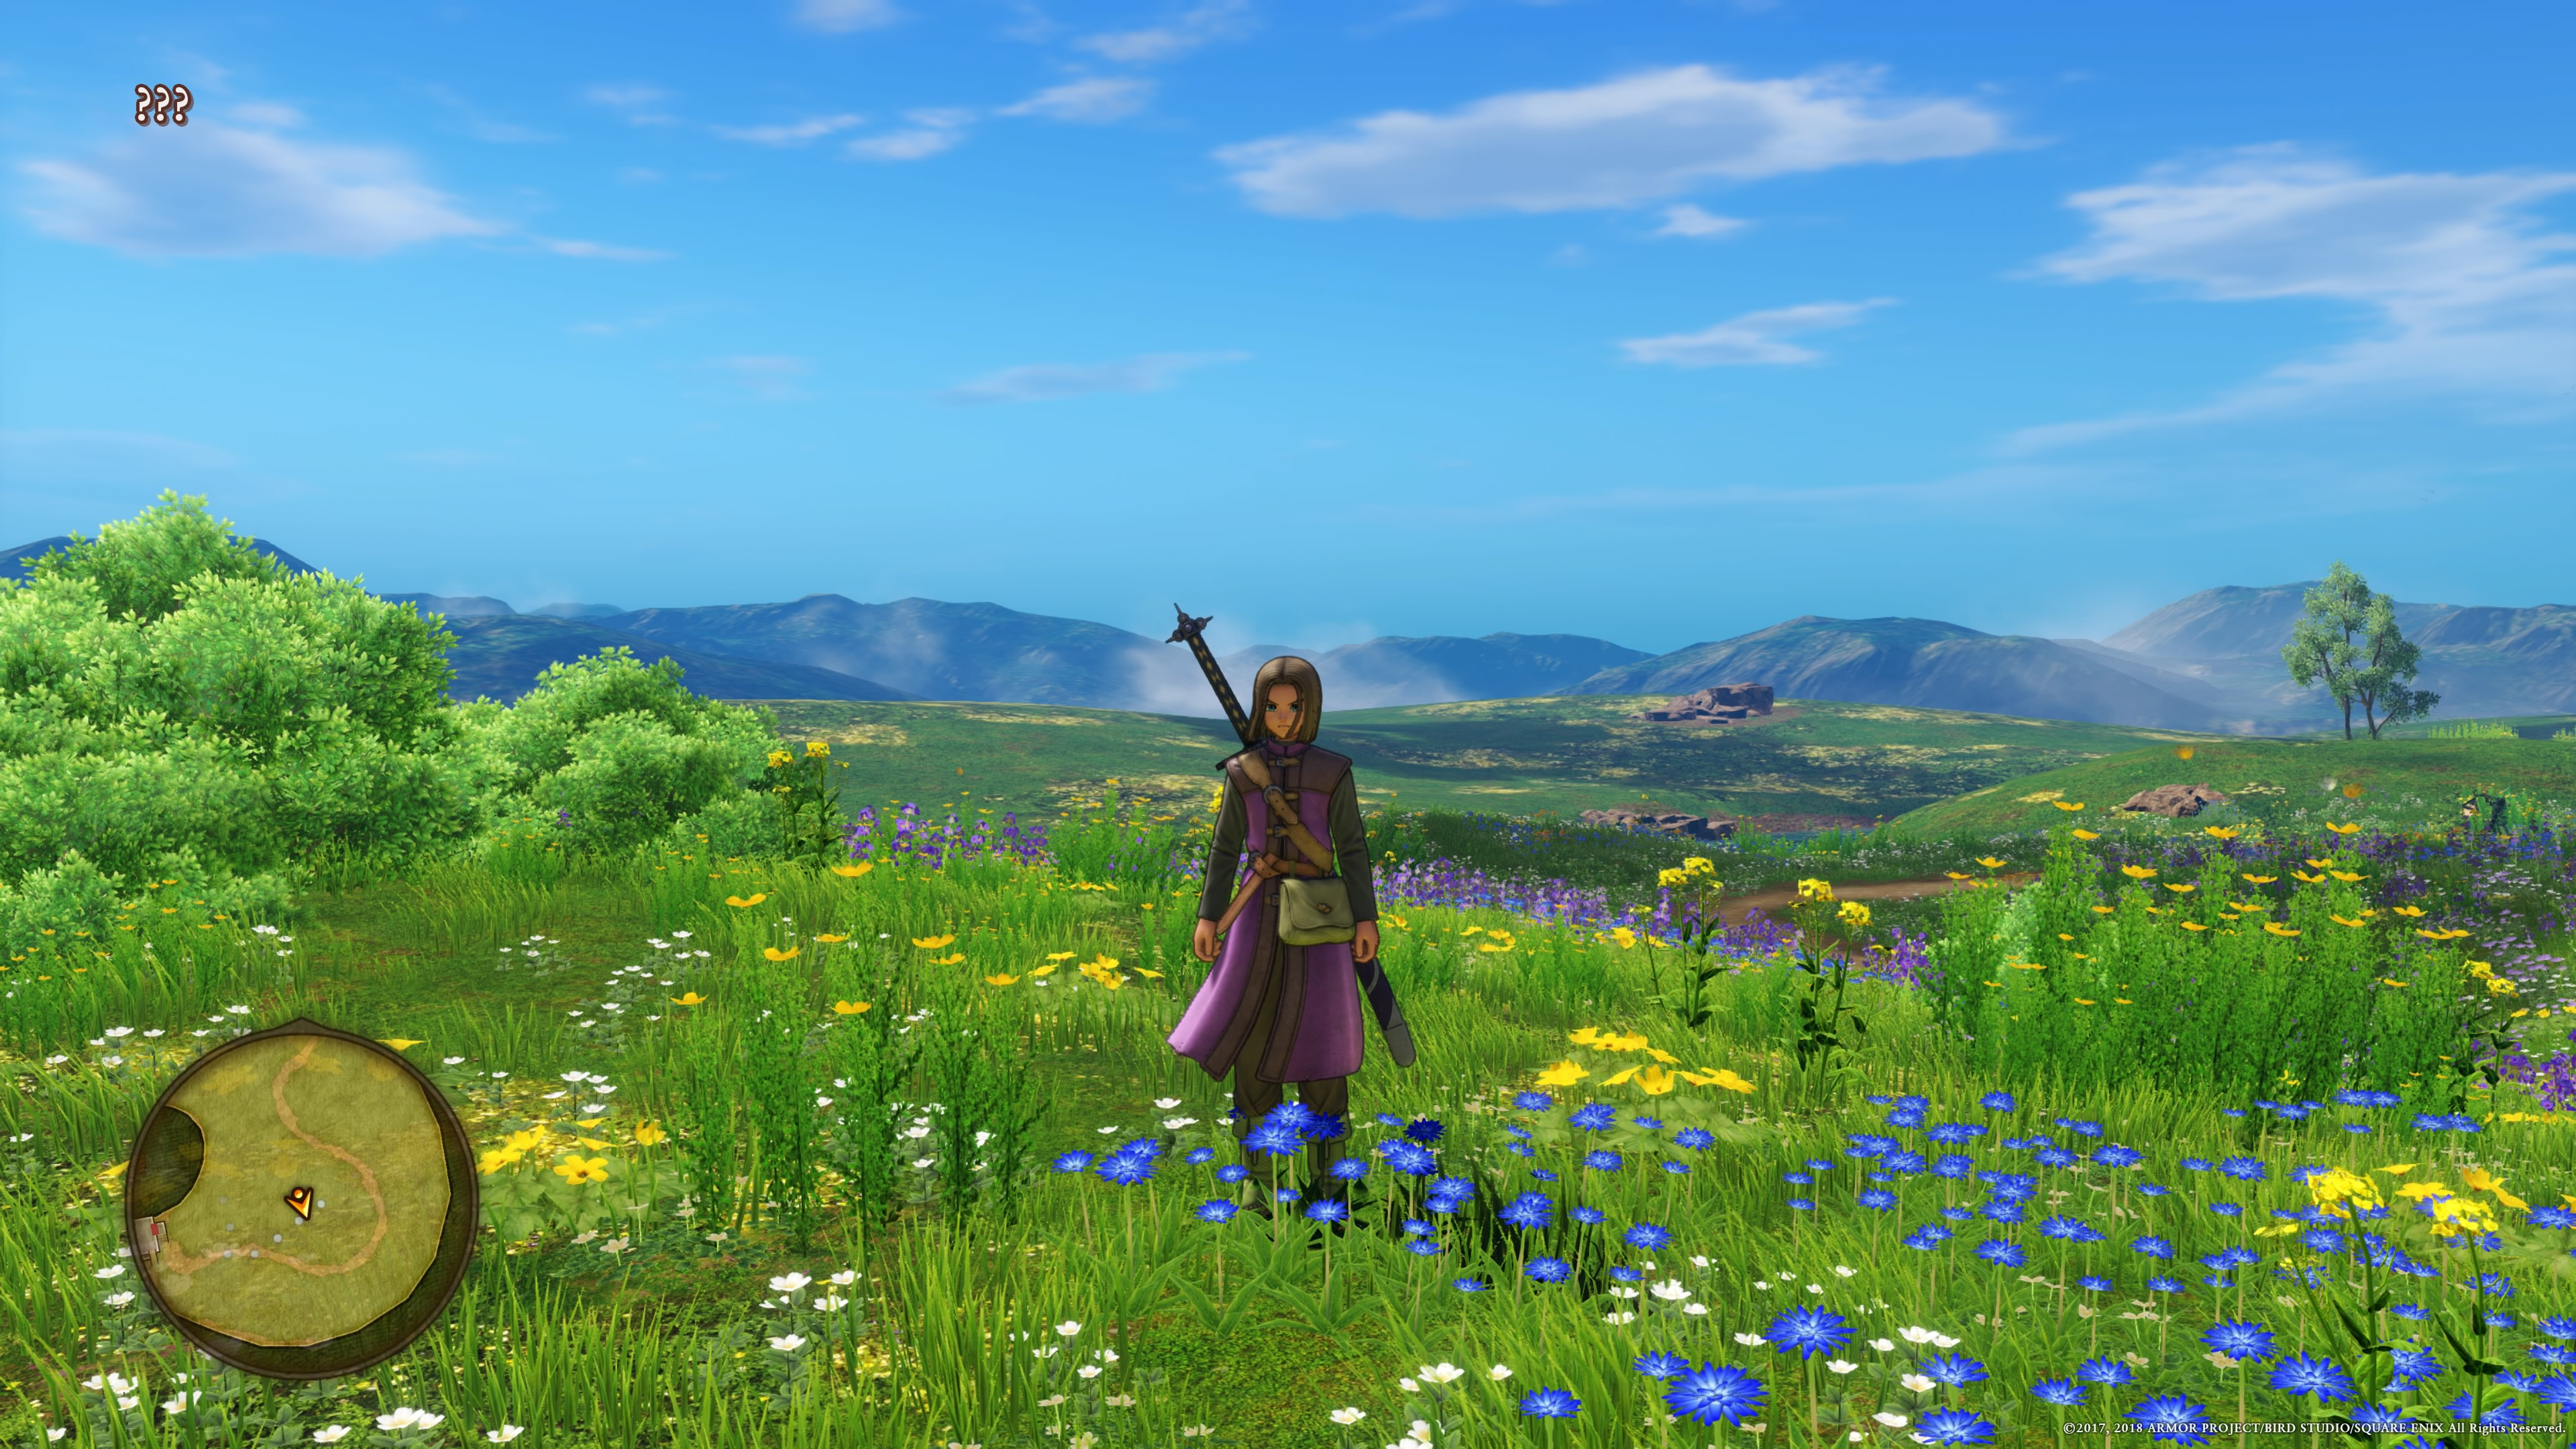 The protagonist stands alone in a lush, green field.